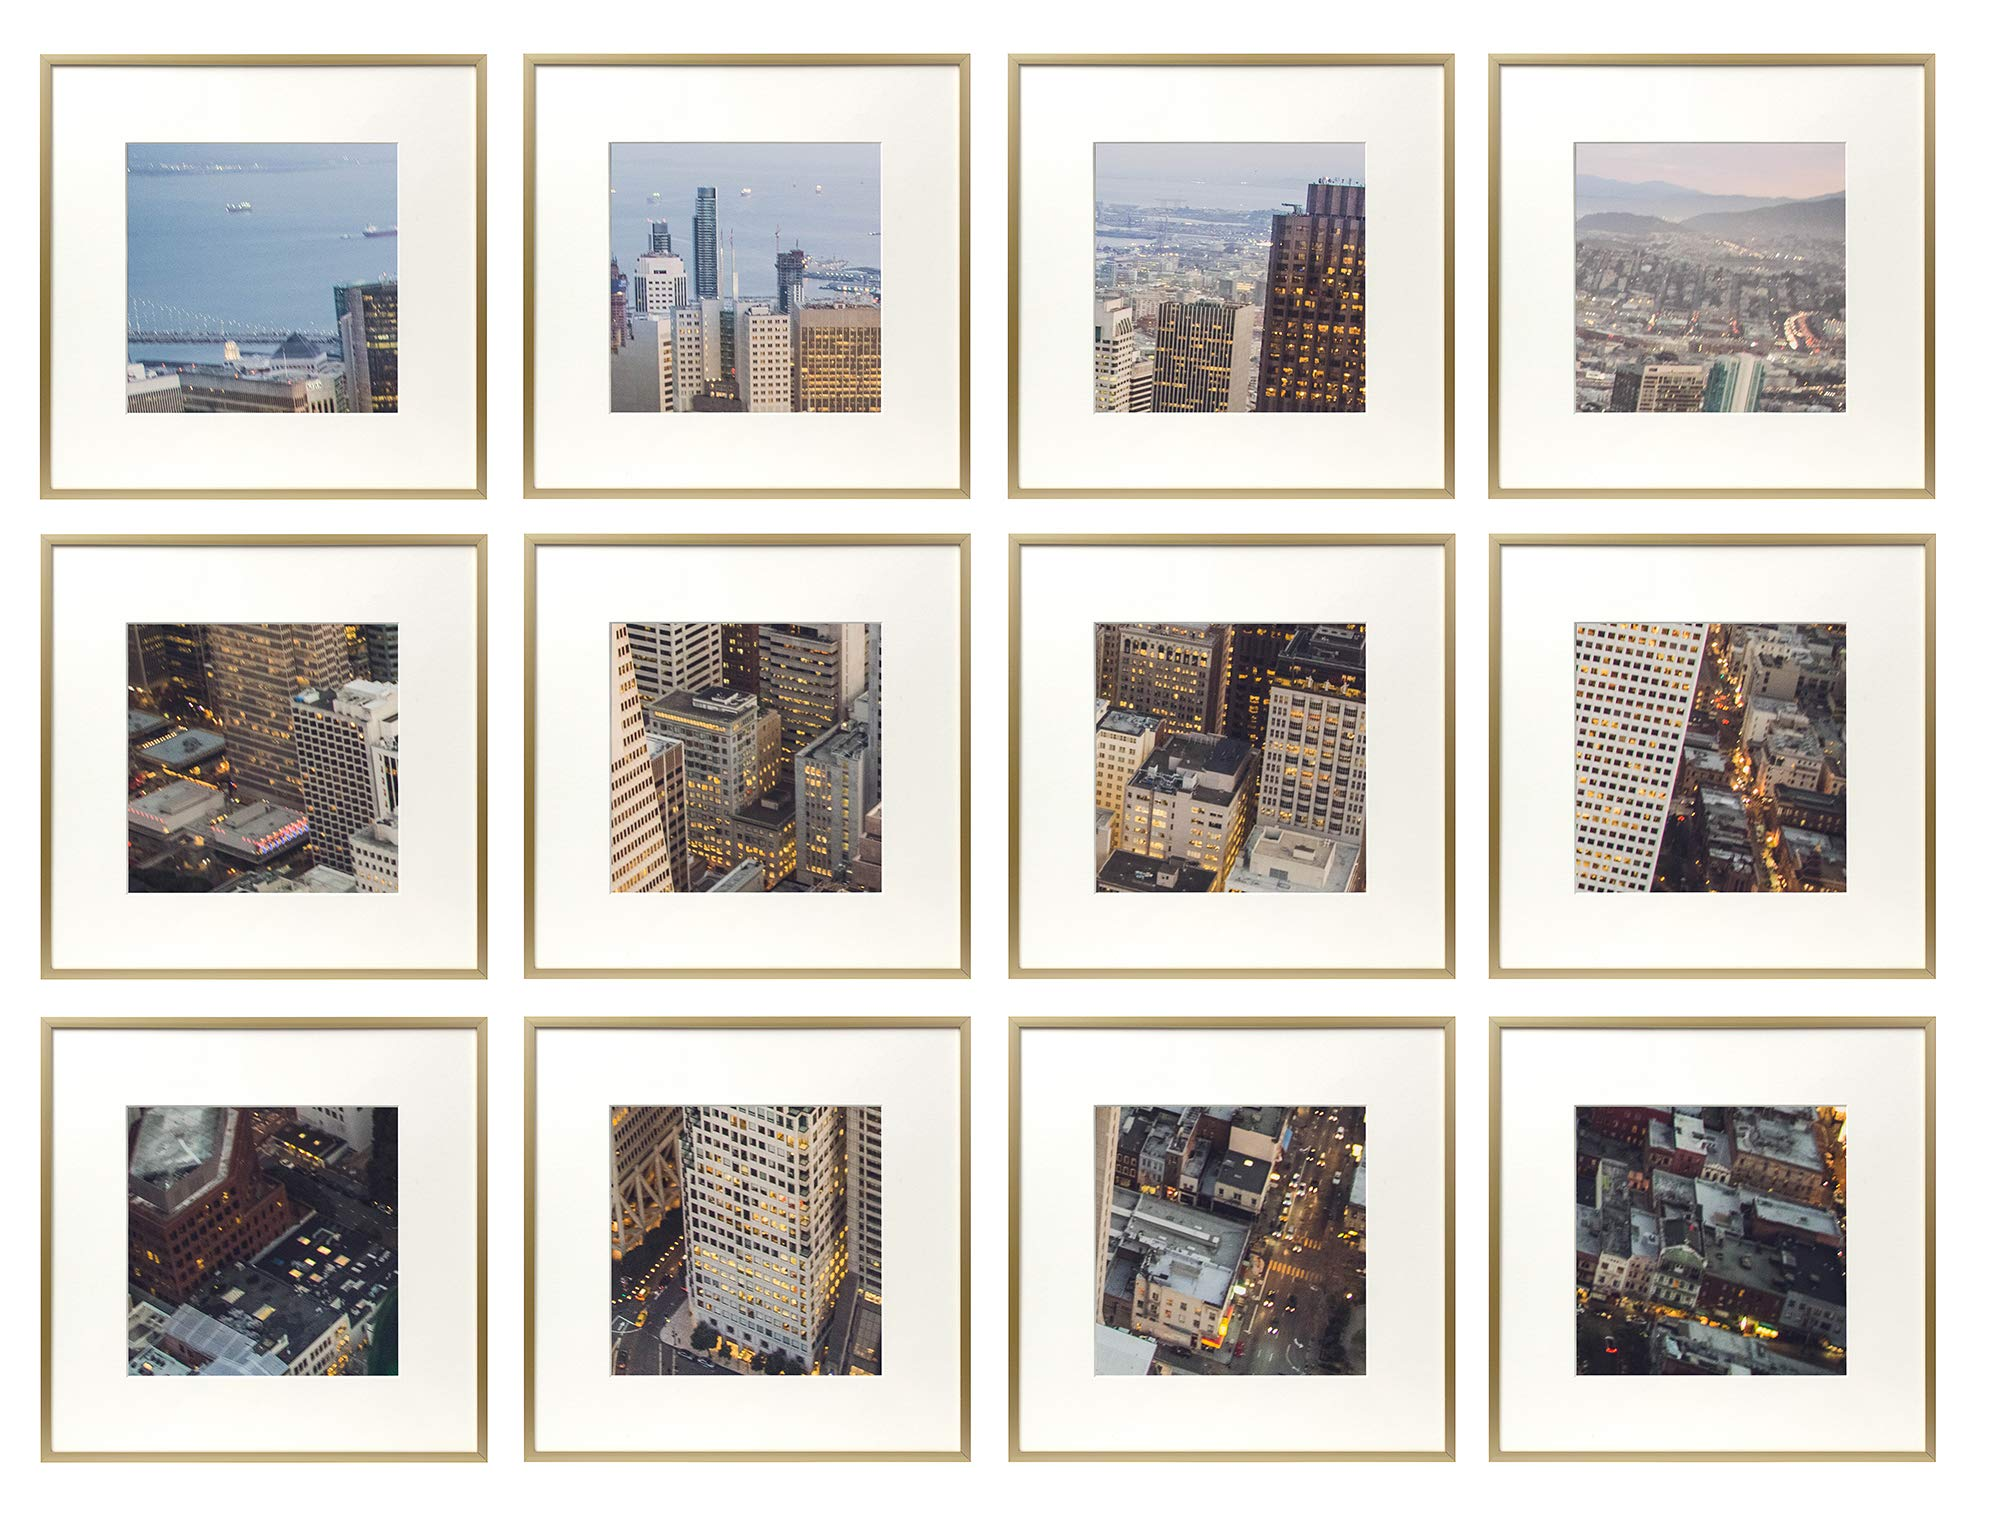 Frametory, Set of 12, 12x12 Gold Aluminum Frame - Includes Ivory Mat for 8x8 Picture - Gallery Wall Display - Sawtooth Hanger, Swivel Tabs - Collage Set for Weddings, Decorations, Art by Frametory (Image #1)